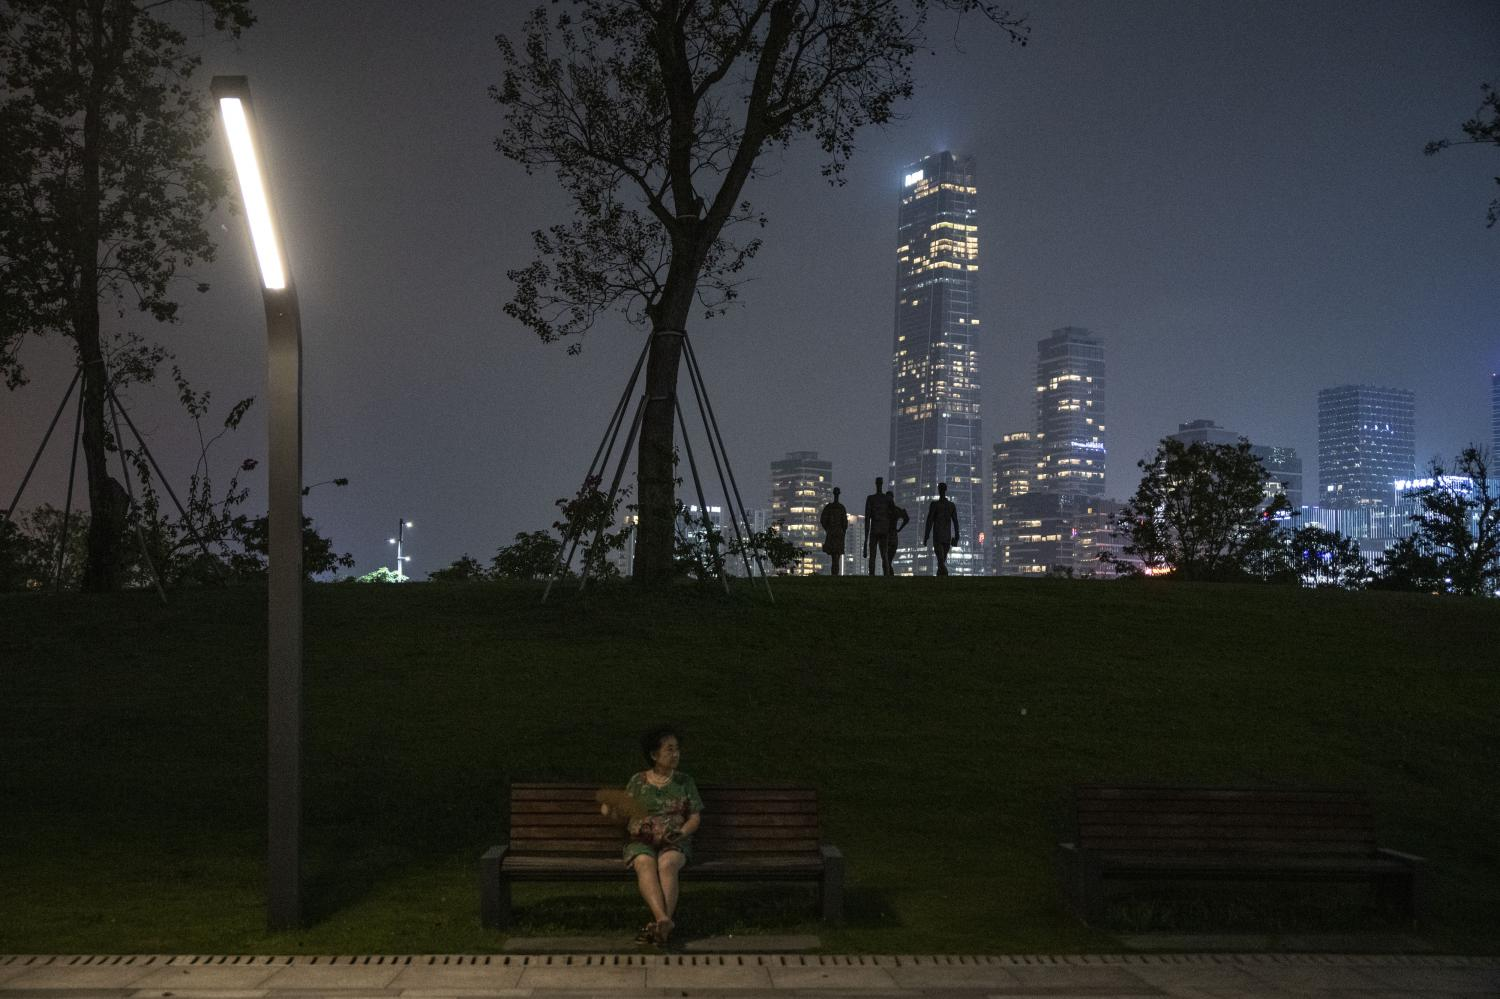 Visitors at a park in Shenzhen on Sept 30. Over 20 Chinese regions are facing electricity cuts as the nation's power crisis deepens. Bloomberg